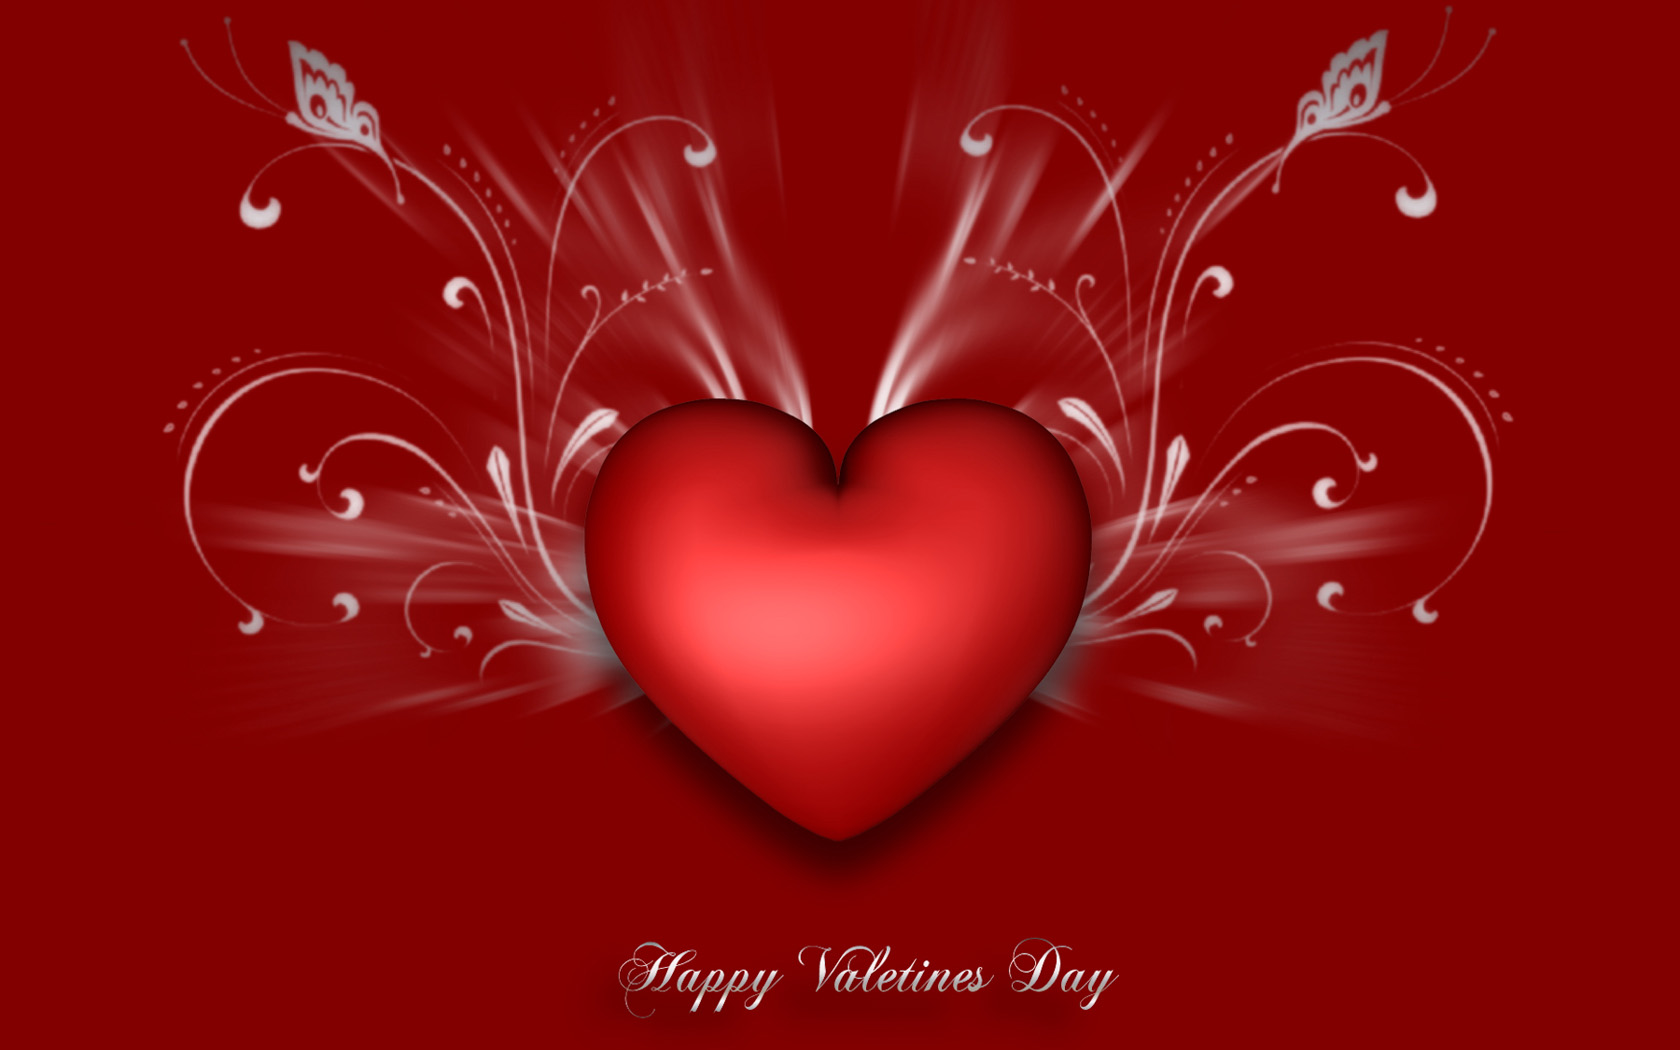 Valentines-Day-2016-images